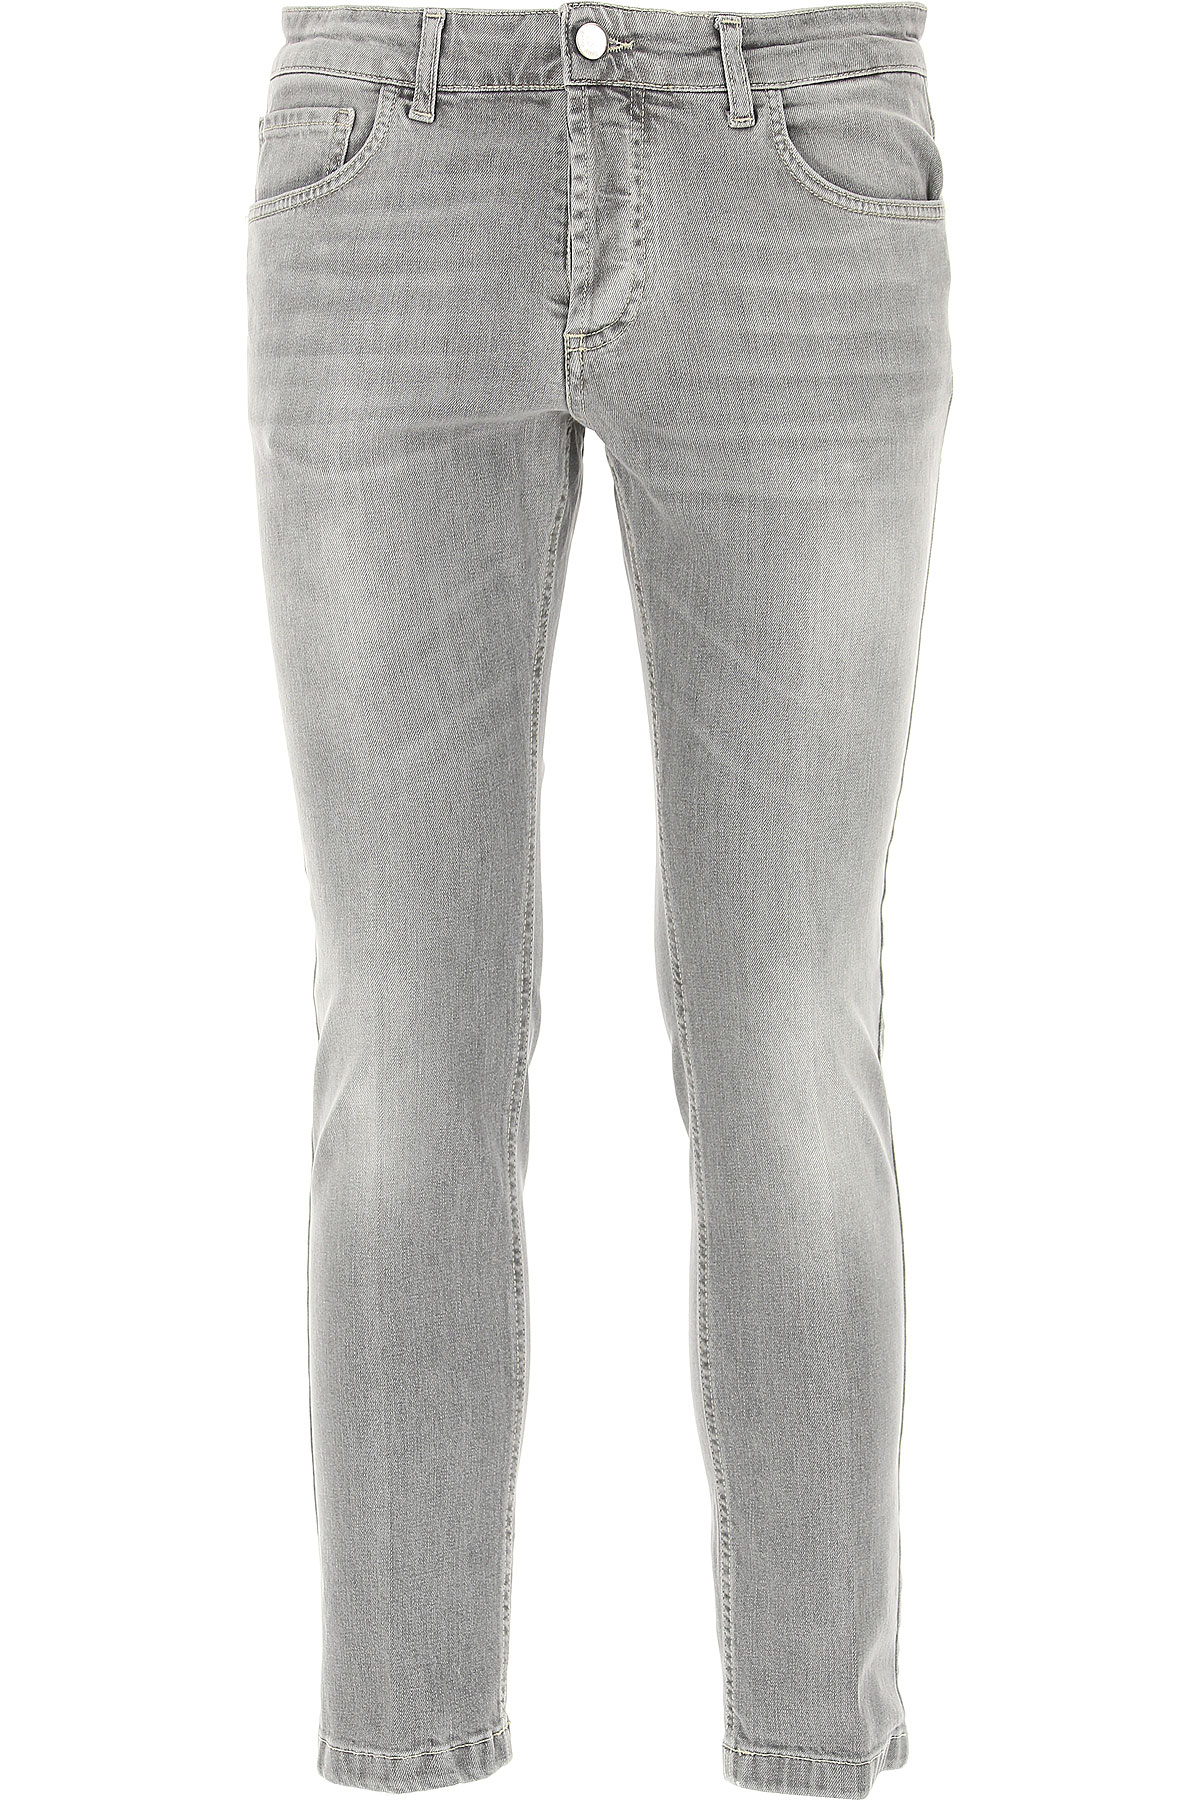 Entre Amis Jeans On Sale in Outlet, Grey, Cotton, 2019, 33 34